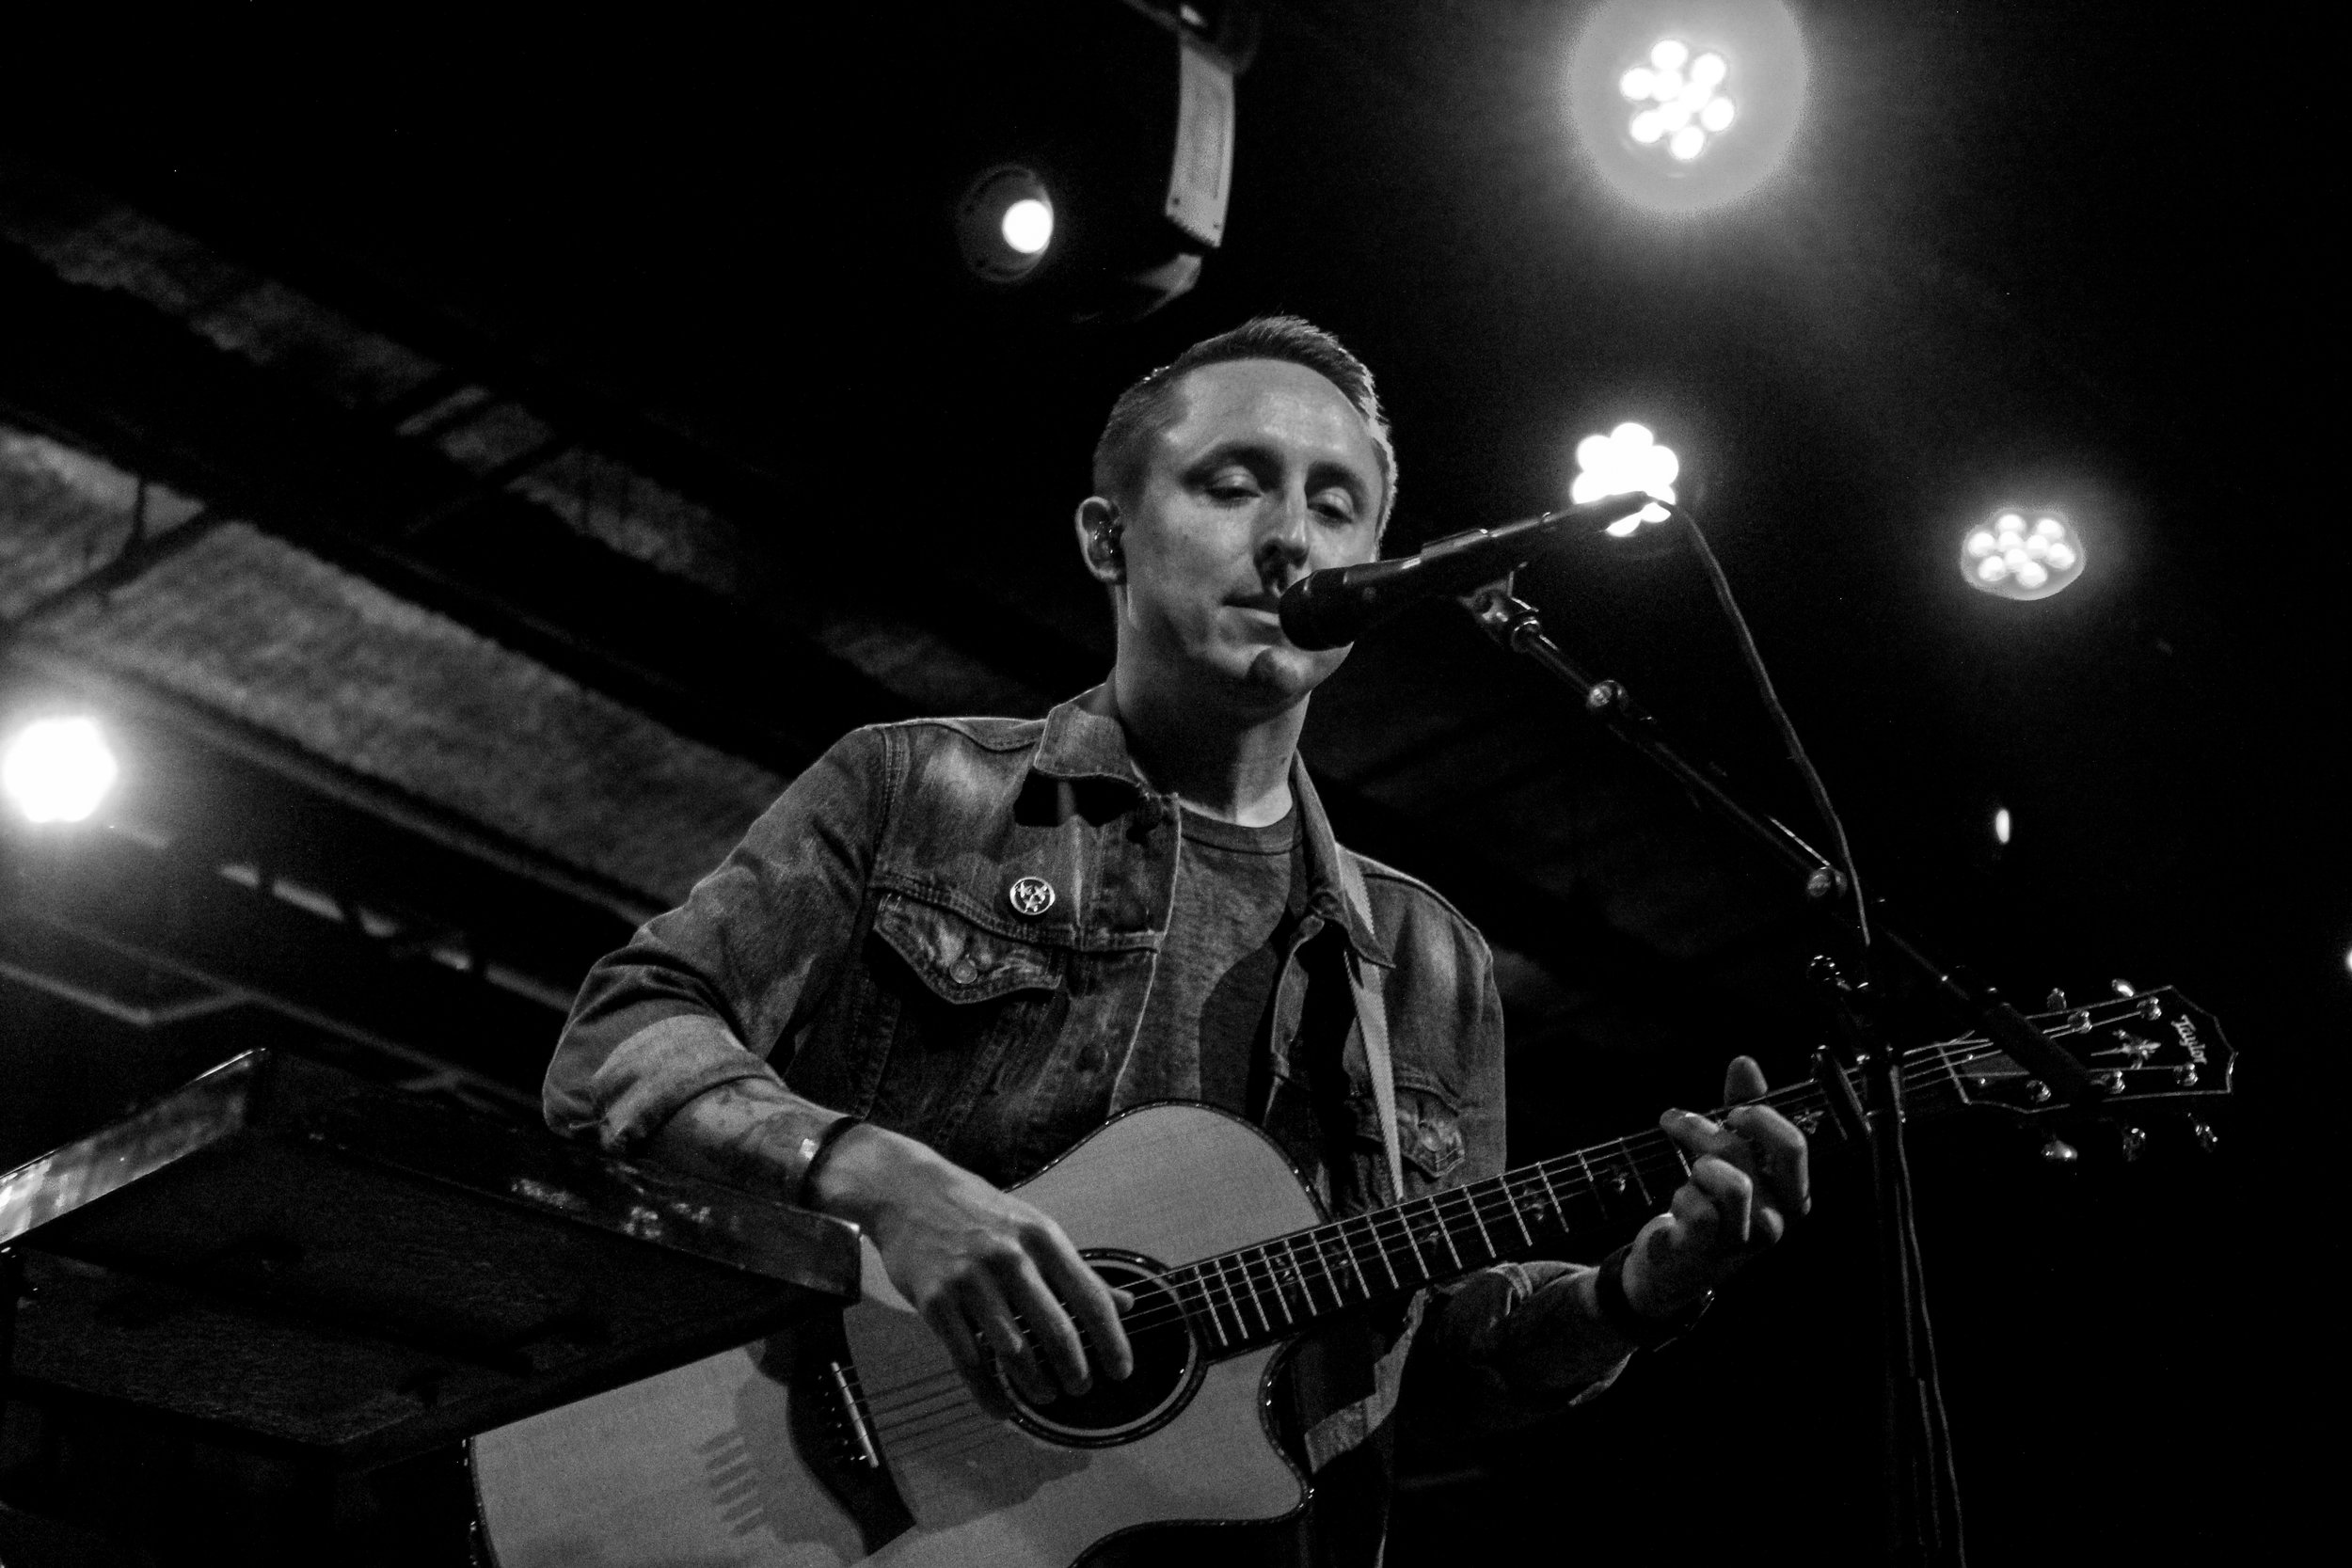 05 William Ryan Key of Yellowcard (9).jpg